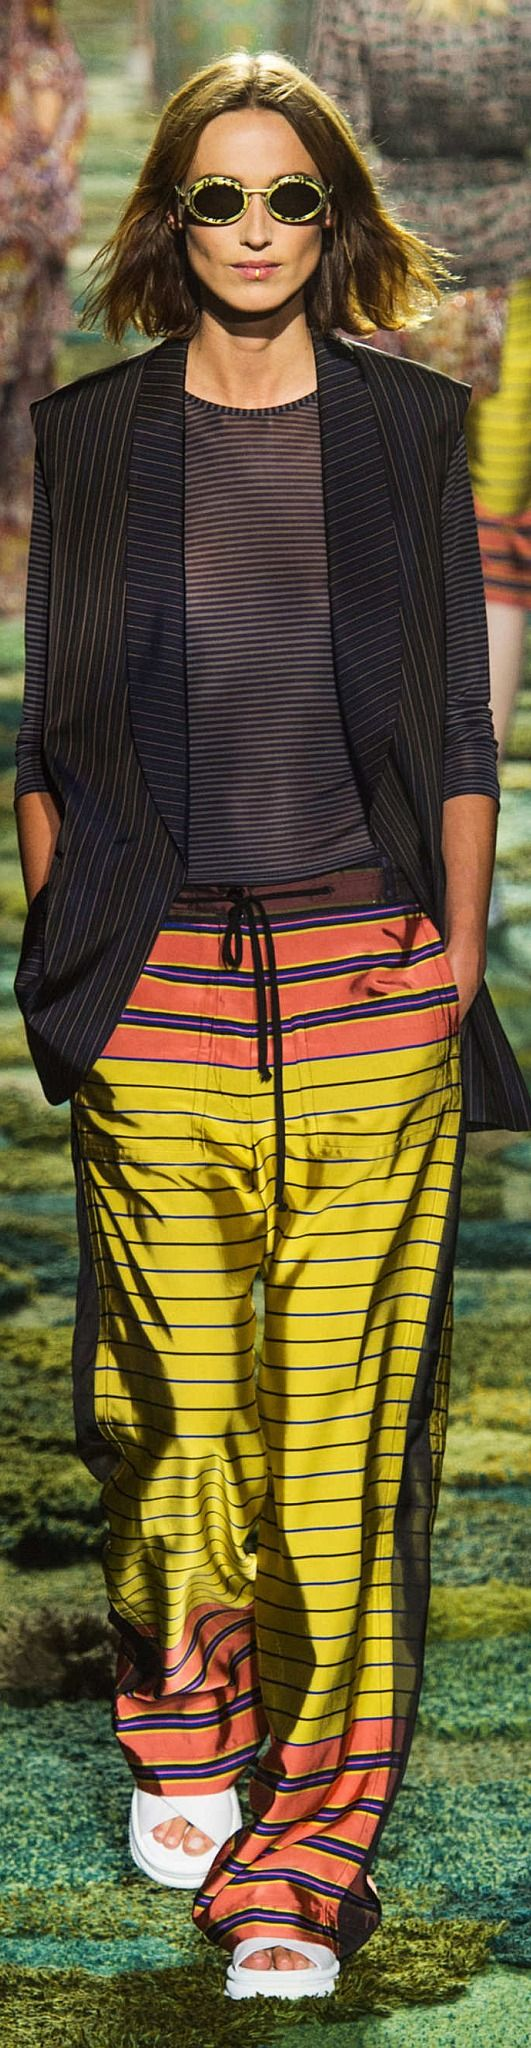 Dries Van Noten Collection Spring 2015 pin courtesy of James Mitchell